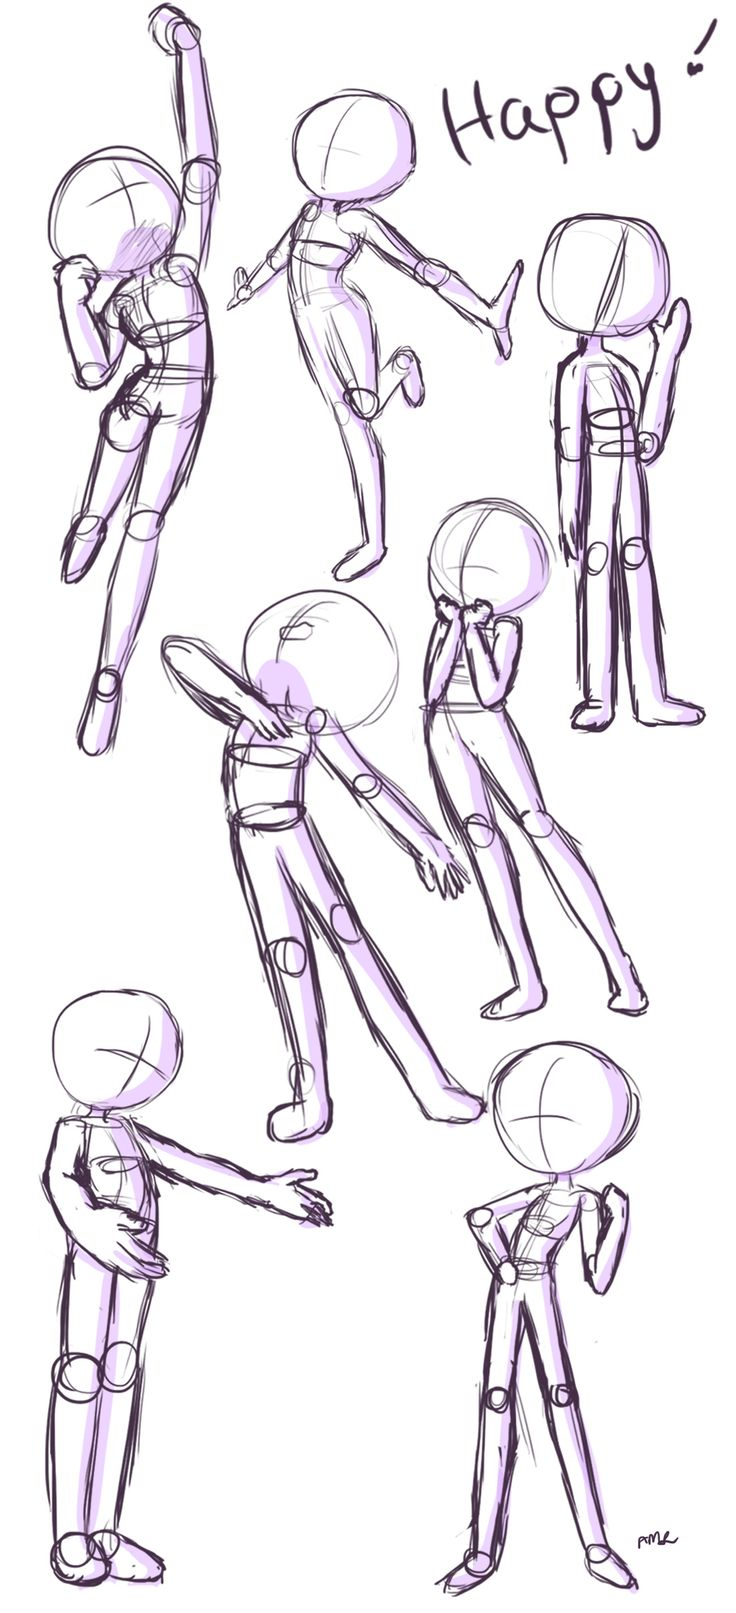 Quick reference page for happy/friendly standing poses! For more poses and explanations, visit the video linked to this pin! (Drawn by Starla's Art Studio YT)